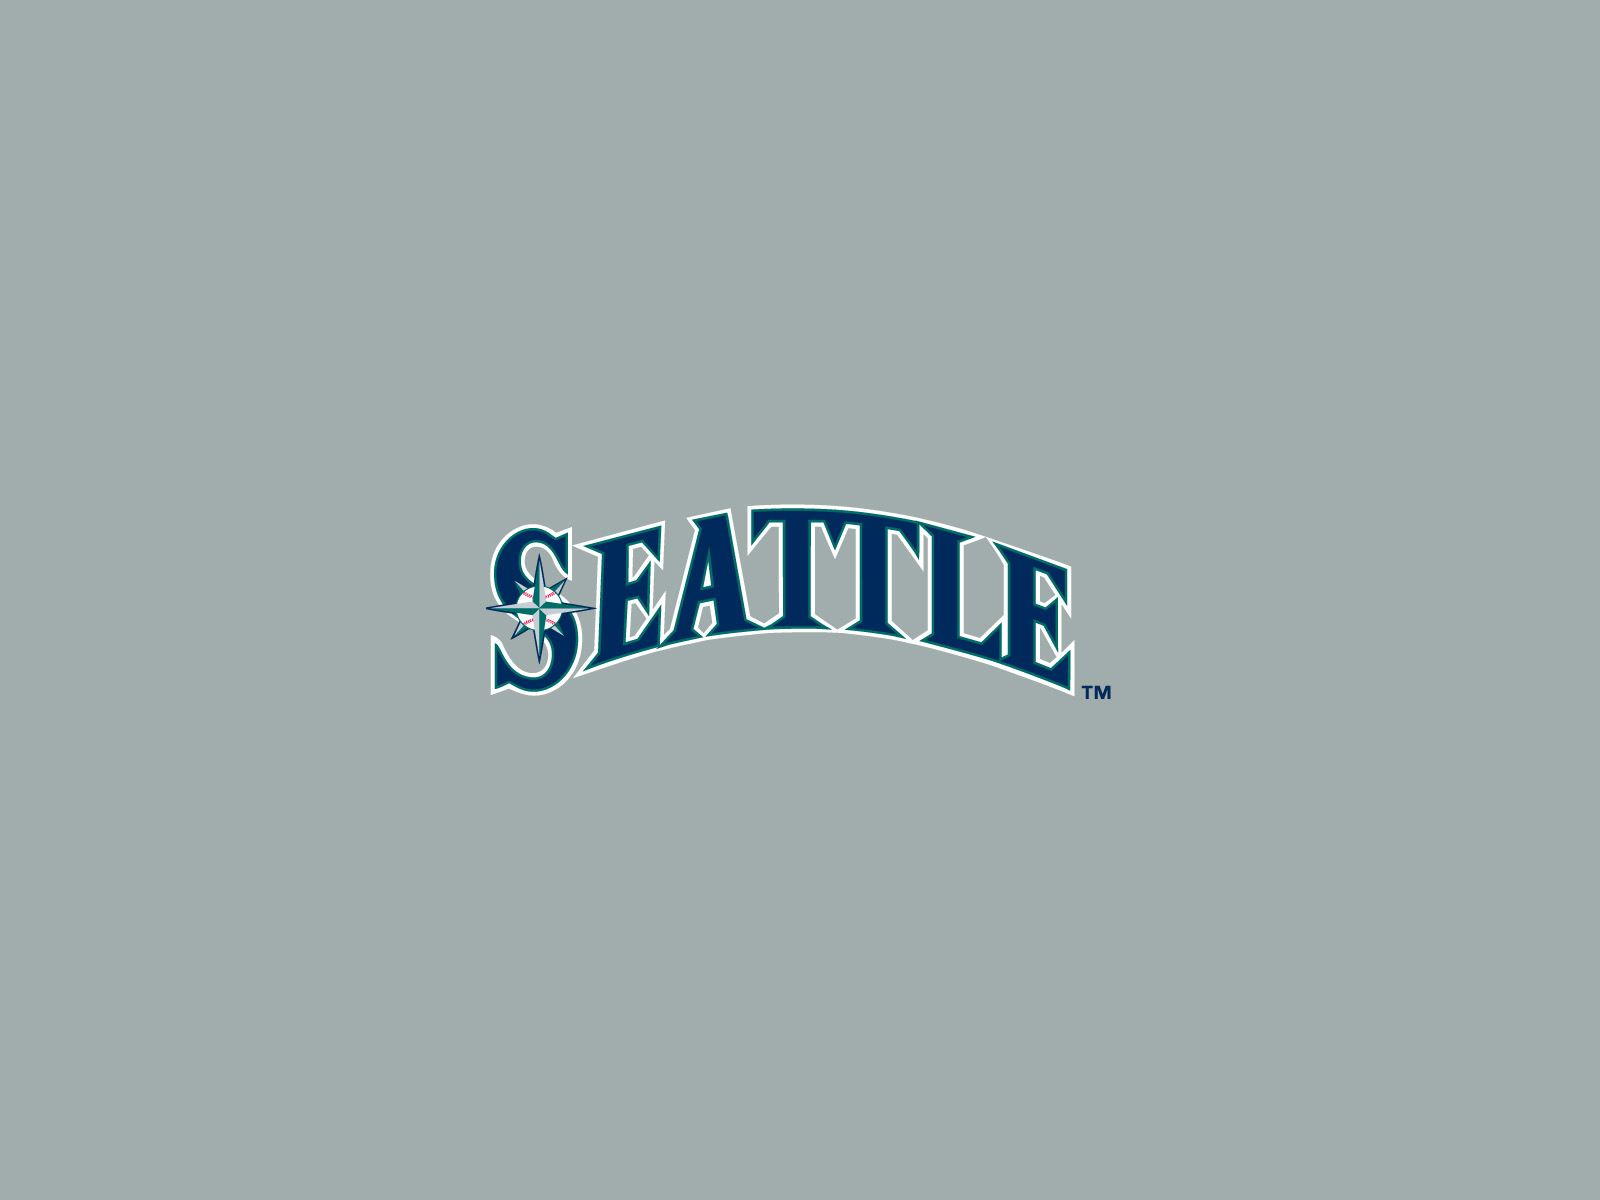 3 Seattle Mariners HD Wallpapers | Backgrounds - Wallpaper ...